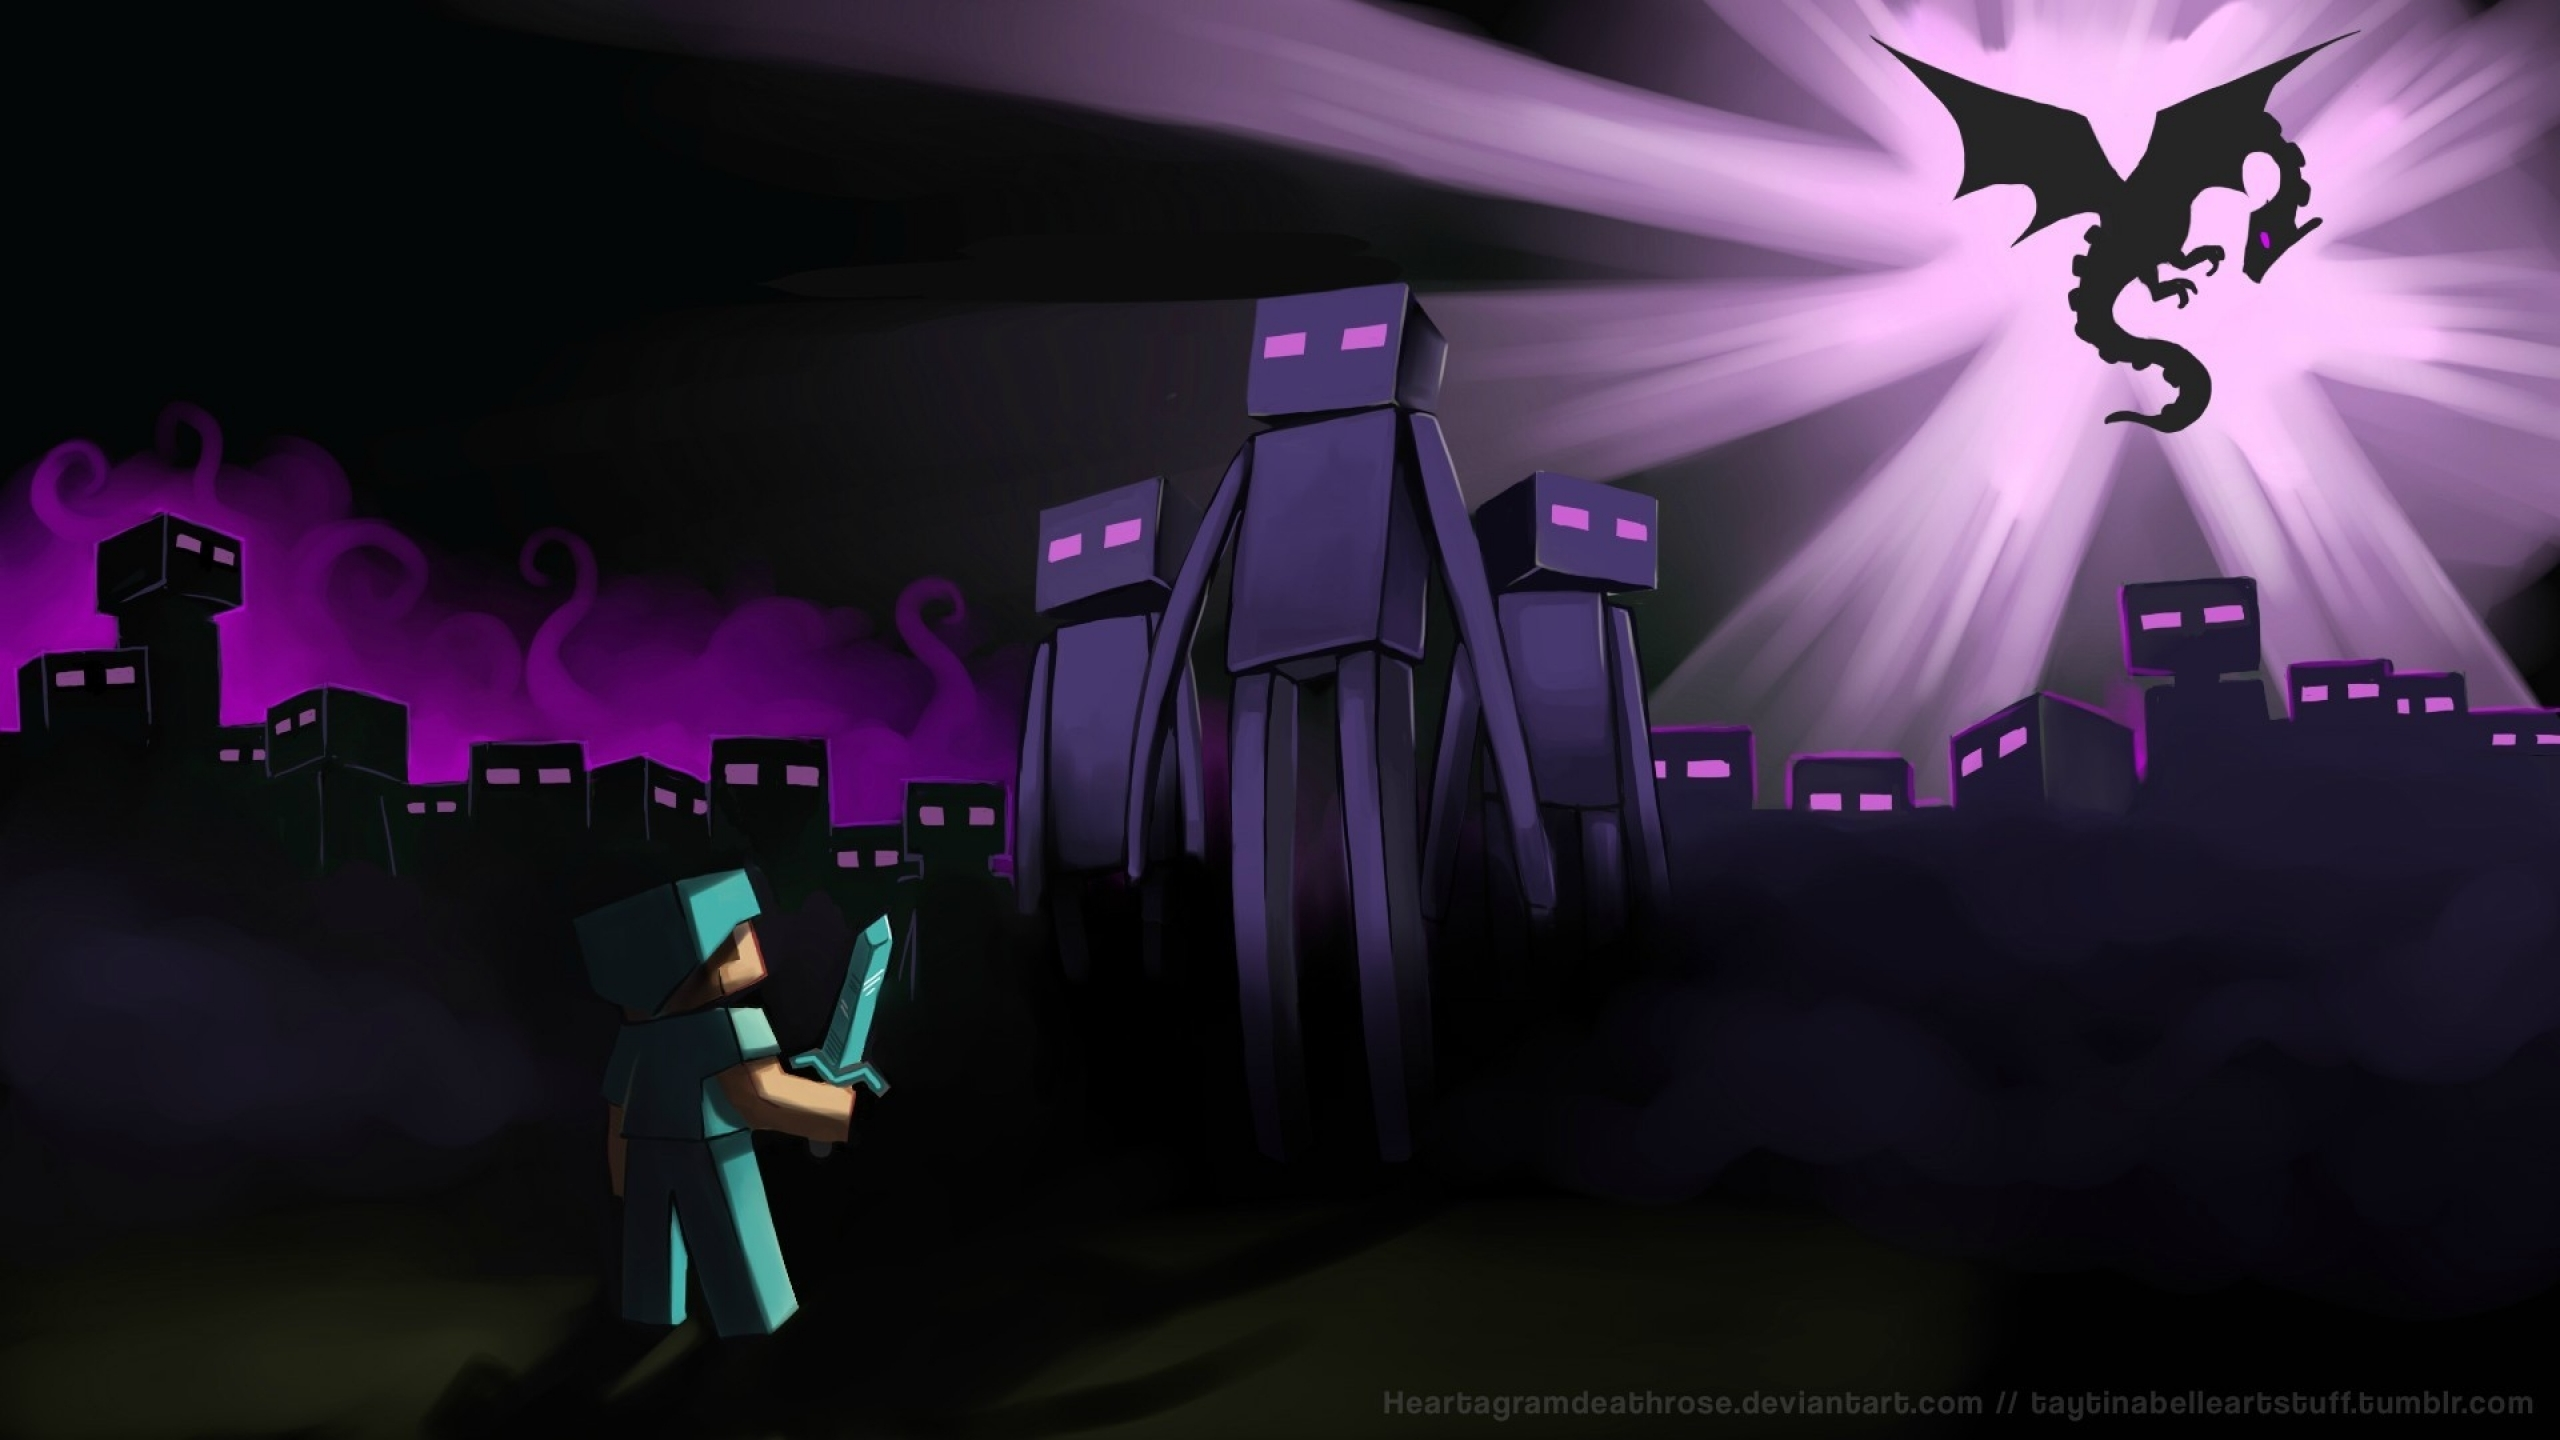 Free Download Minecraft Artwork Enderman Endermen 1920x1080